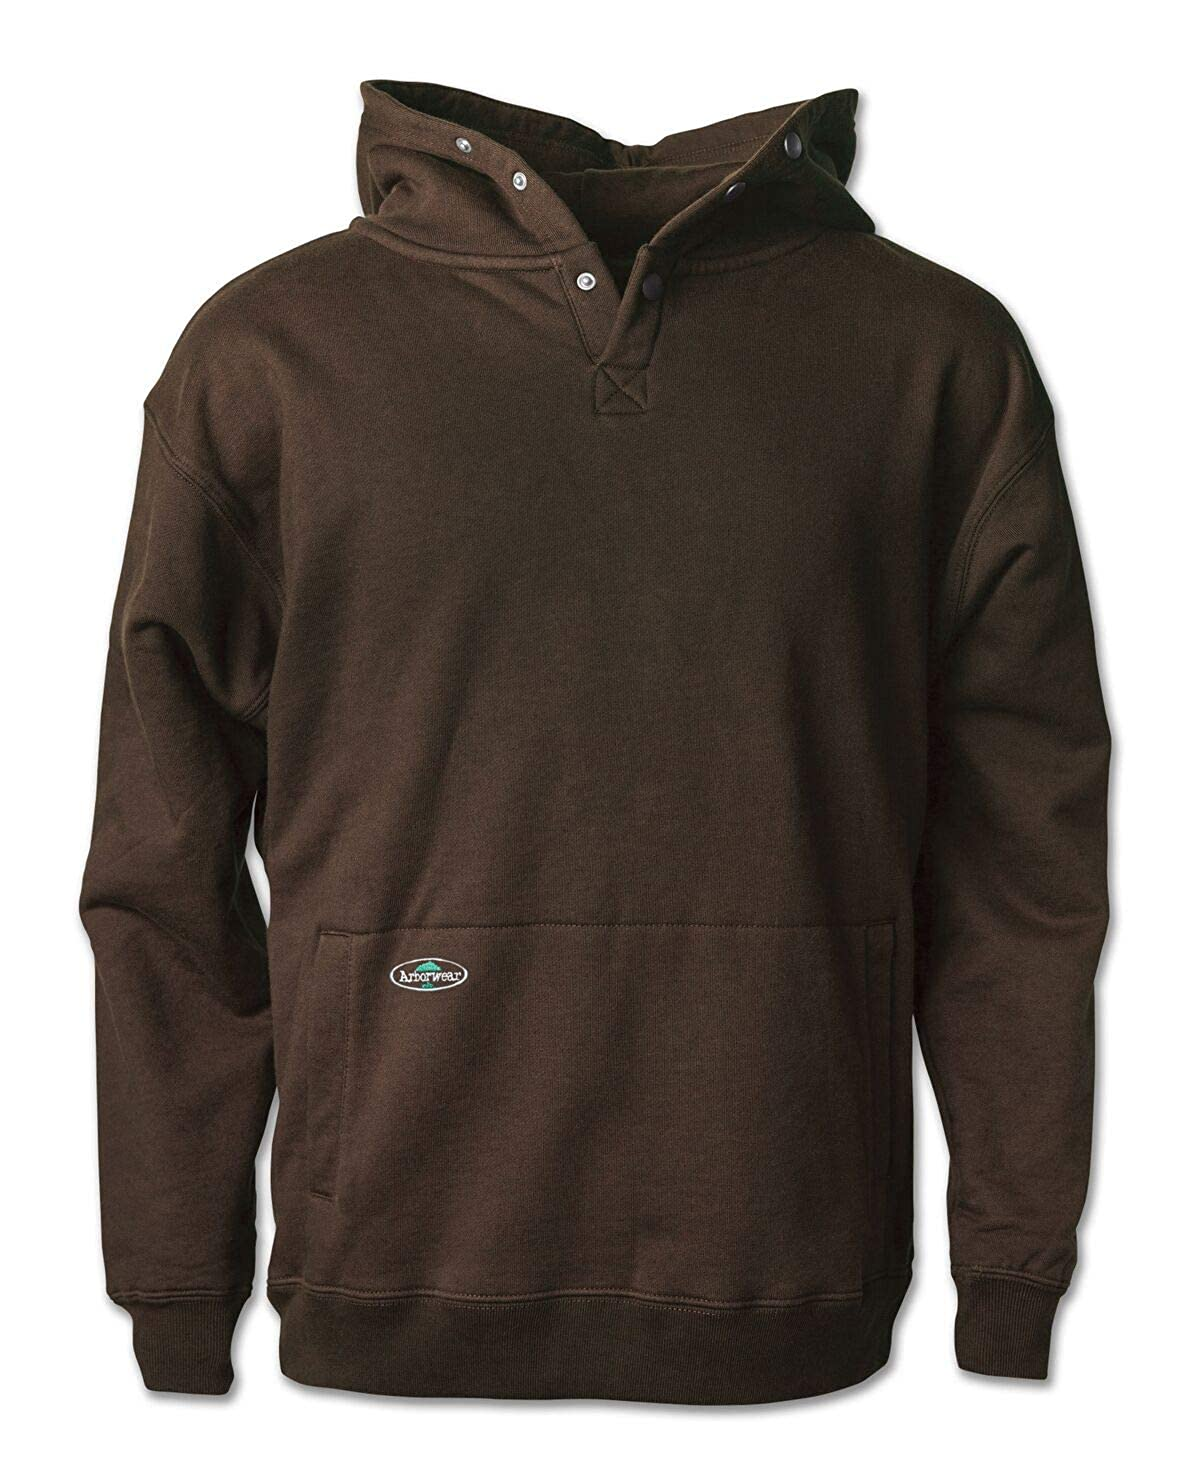 Arborwear Mens Double Thick Pullover Sweatshirt